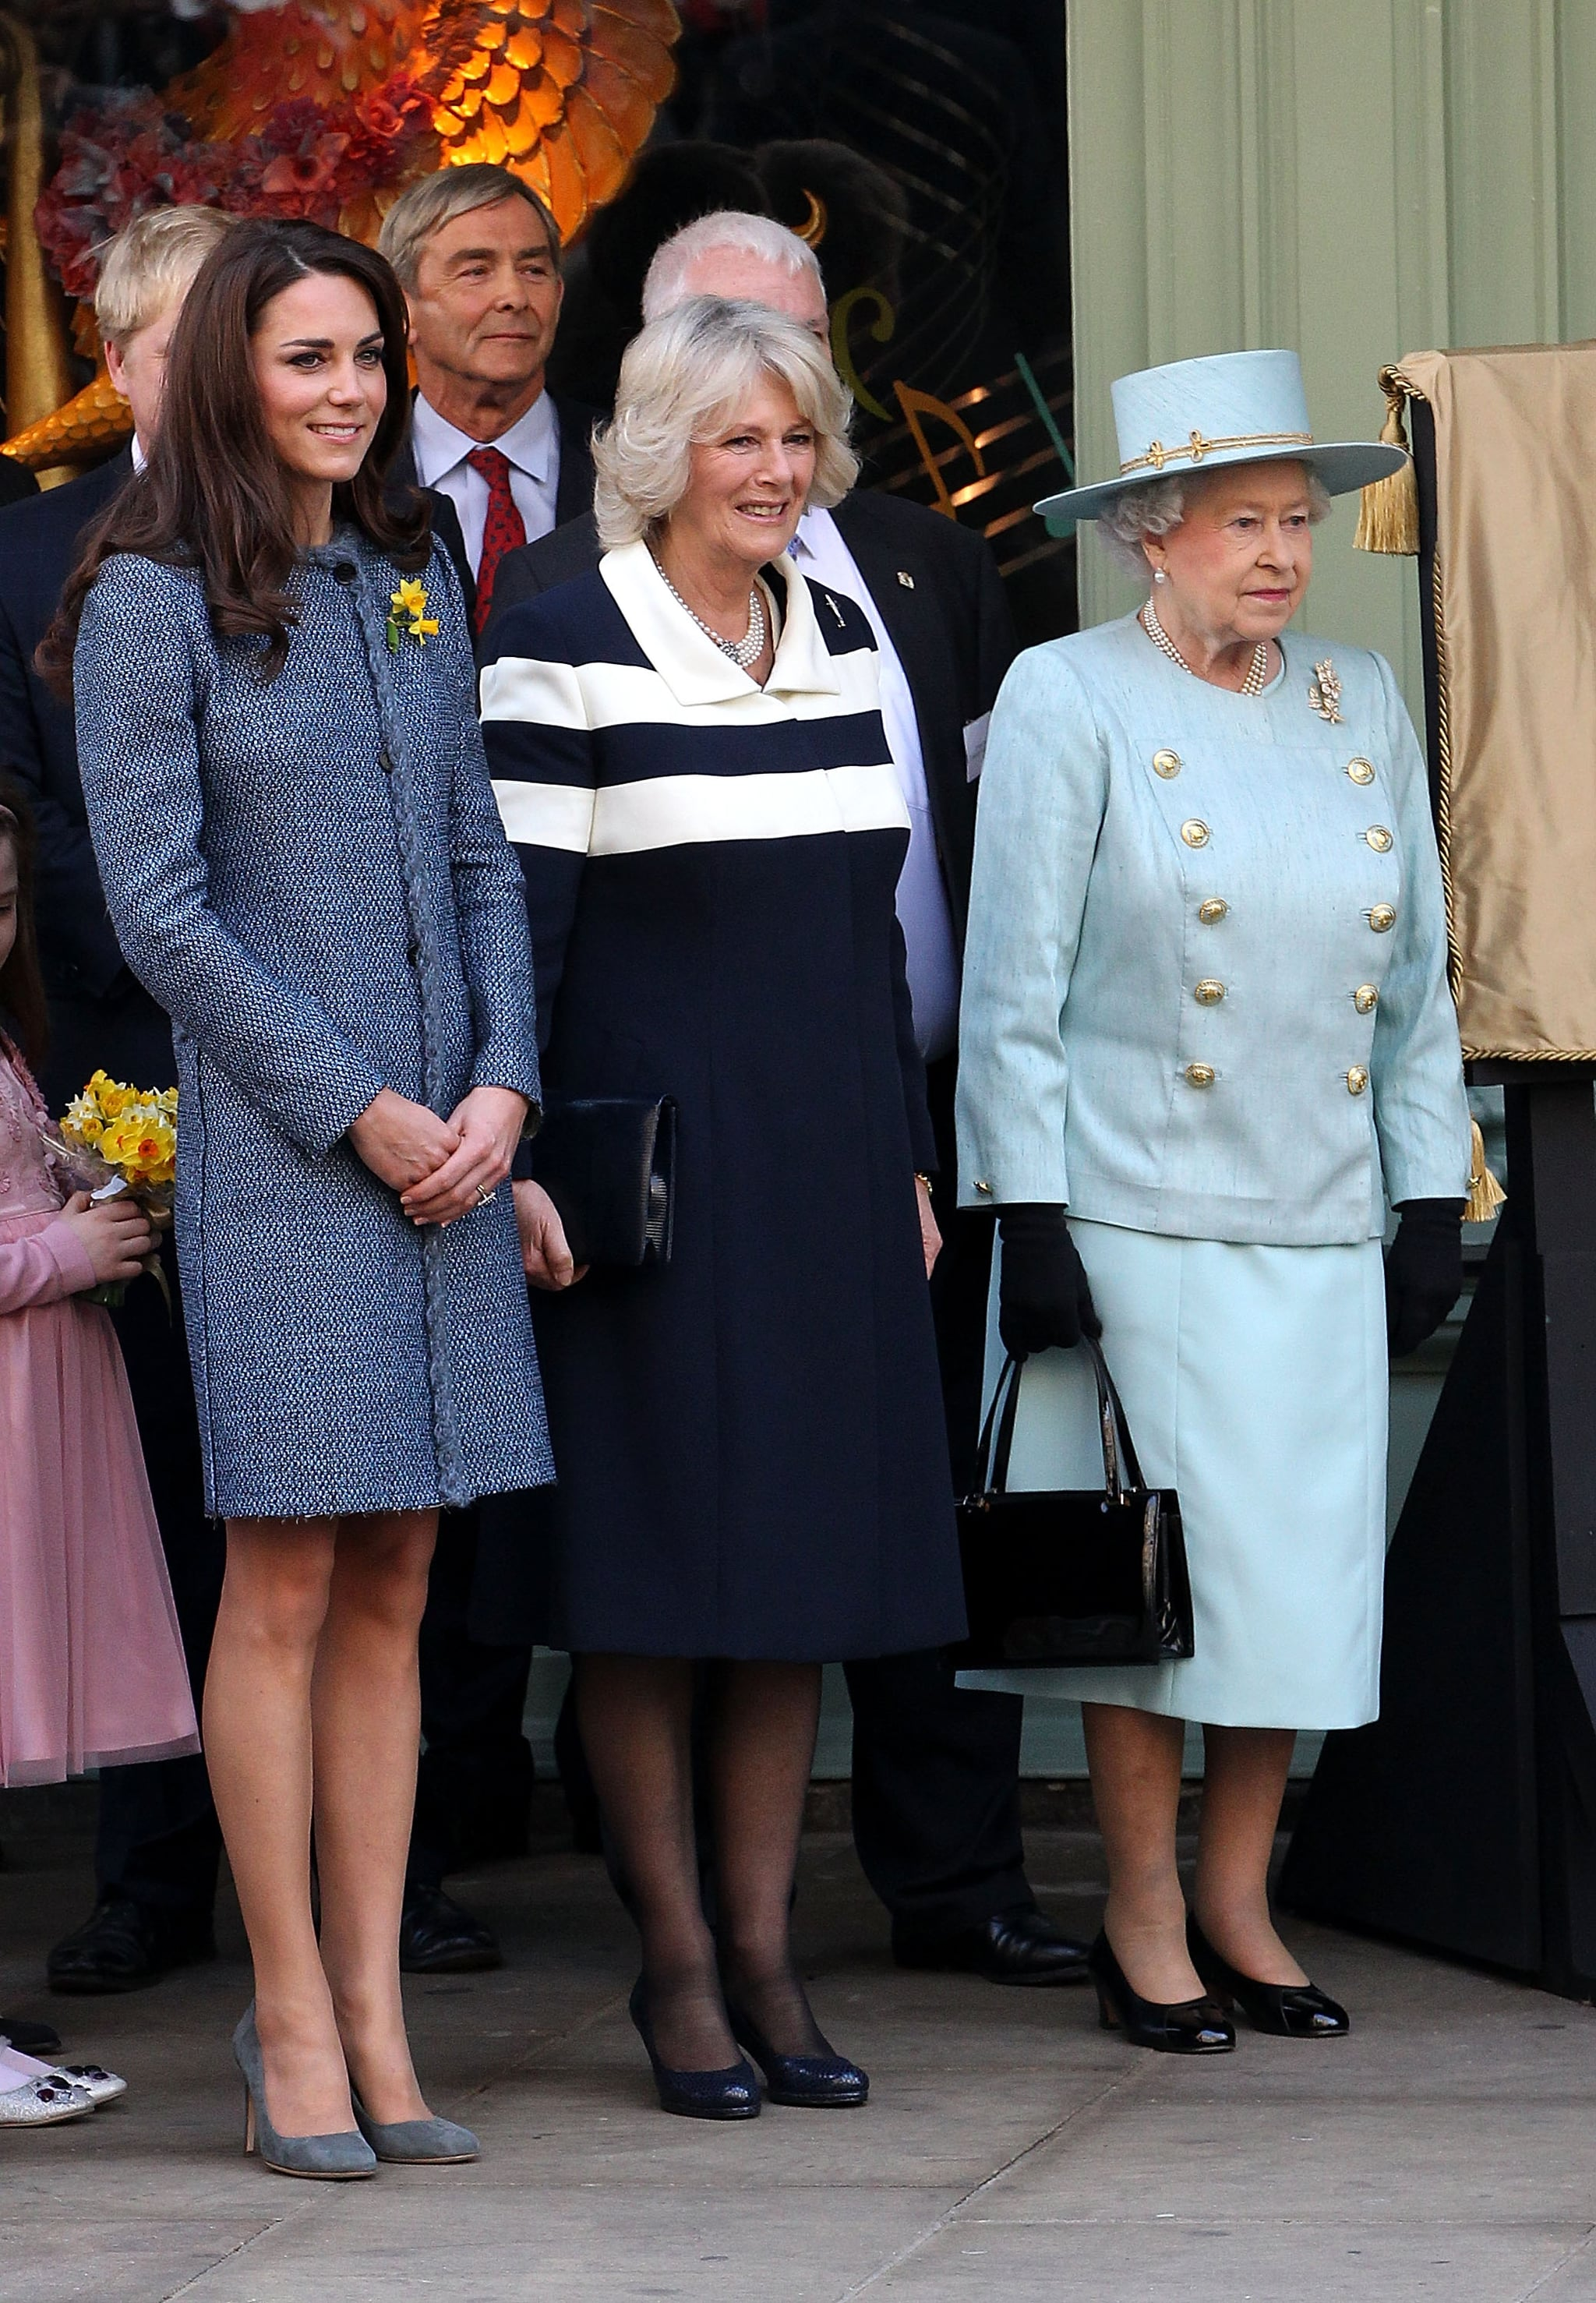 In March 2012, Kate joined up with Queen Elizabeth II and Camilla when they visited the Fortnum & Mason store in London.